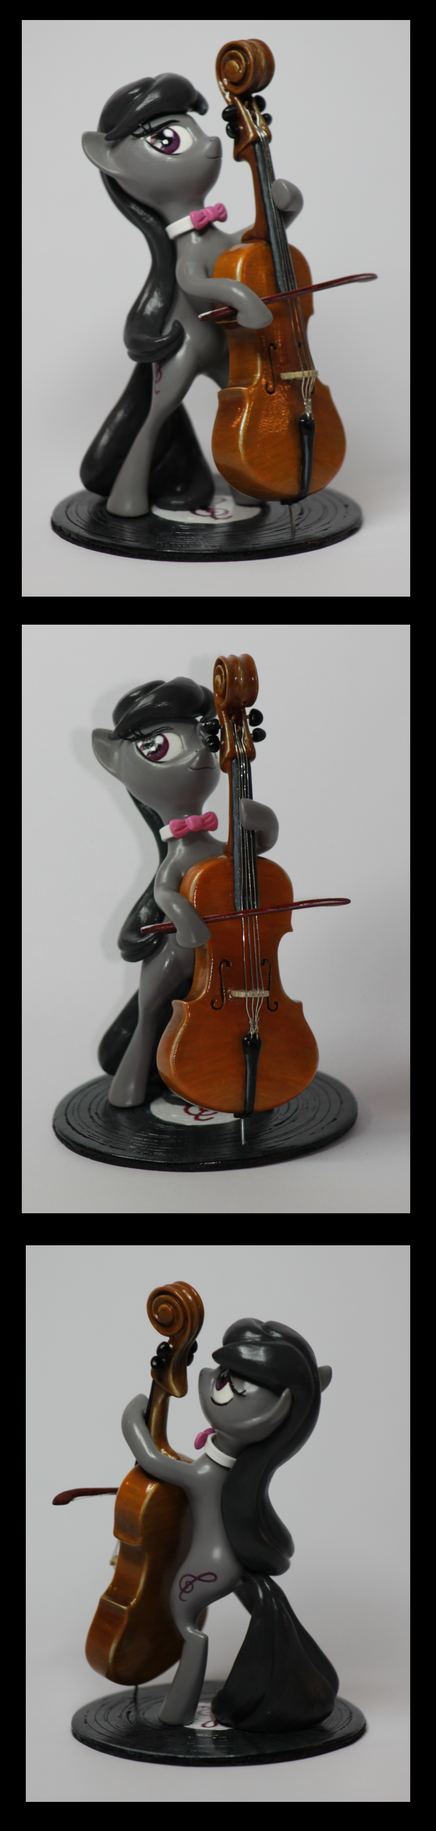 MLP:FIM Octavia miniature by CaptainWilder